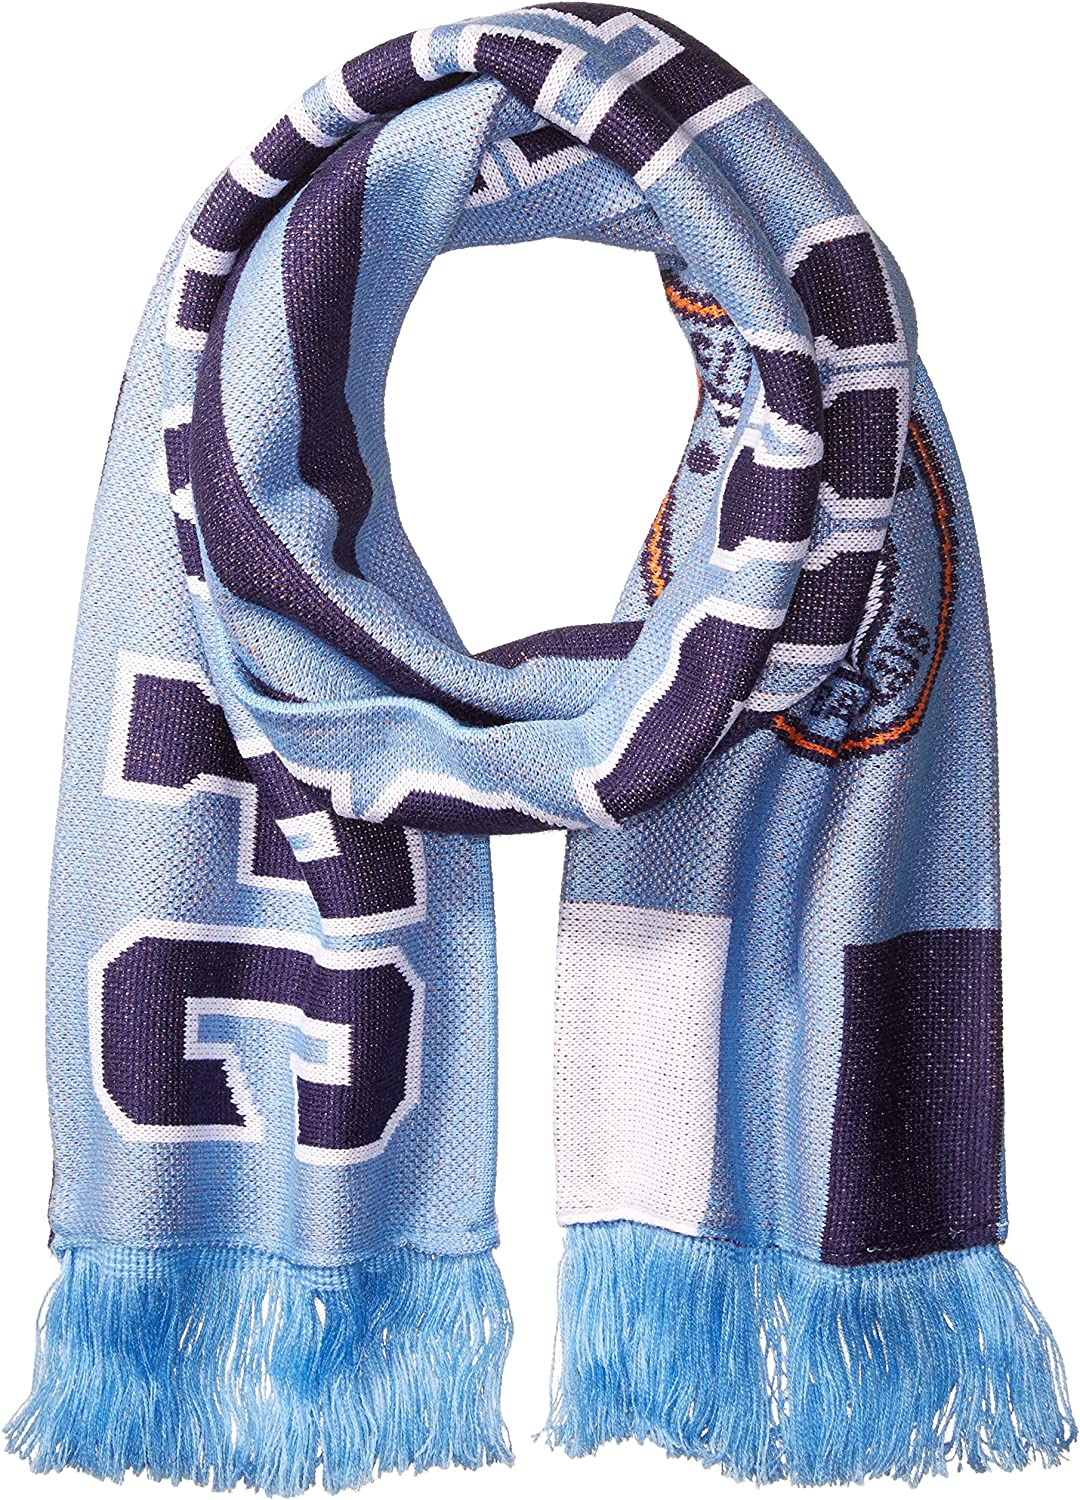 MLS SP17 3 Today's only Scarf Stripes Jacquard overseas